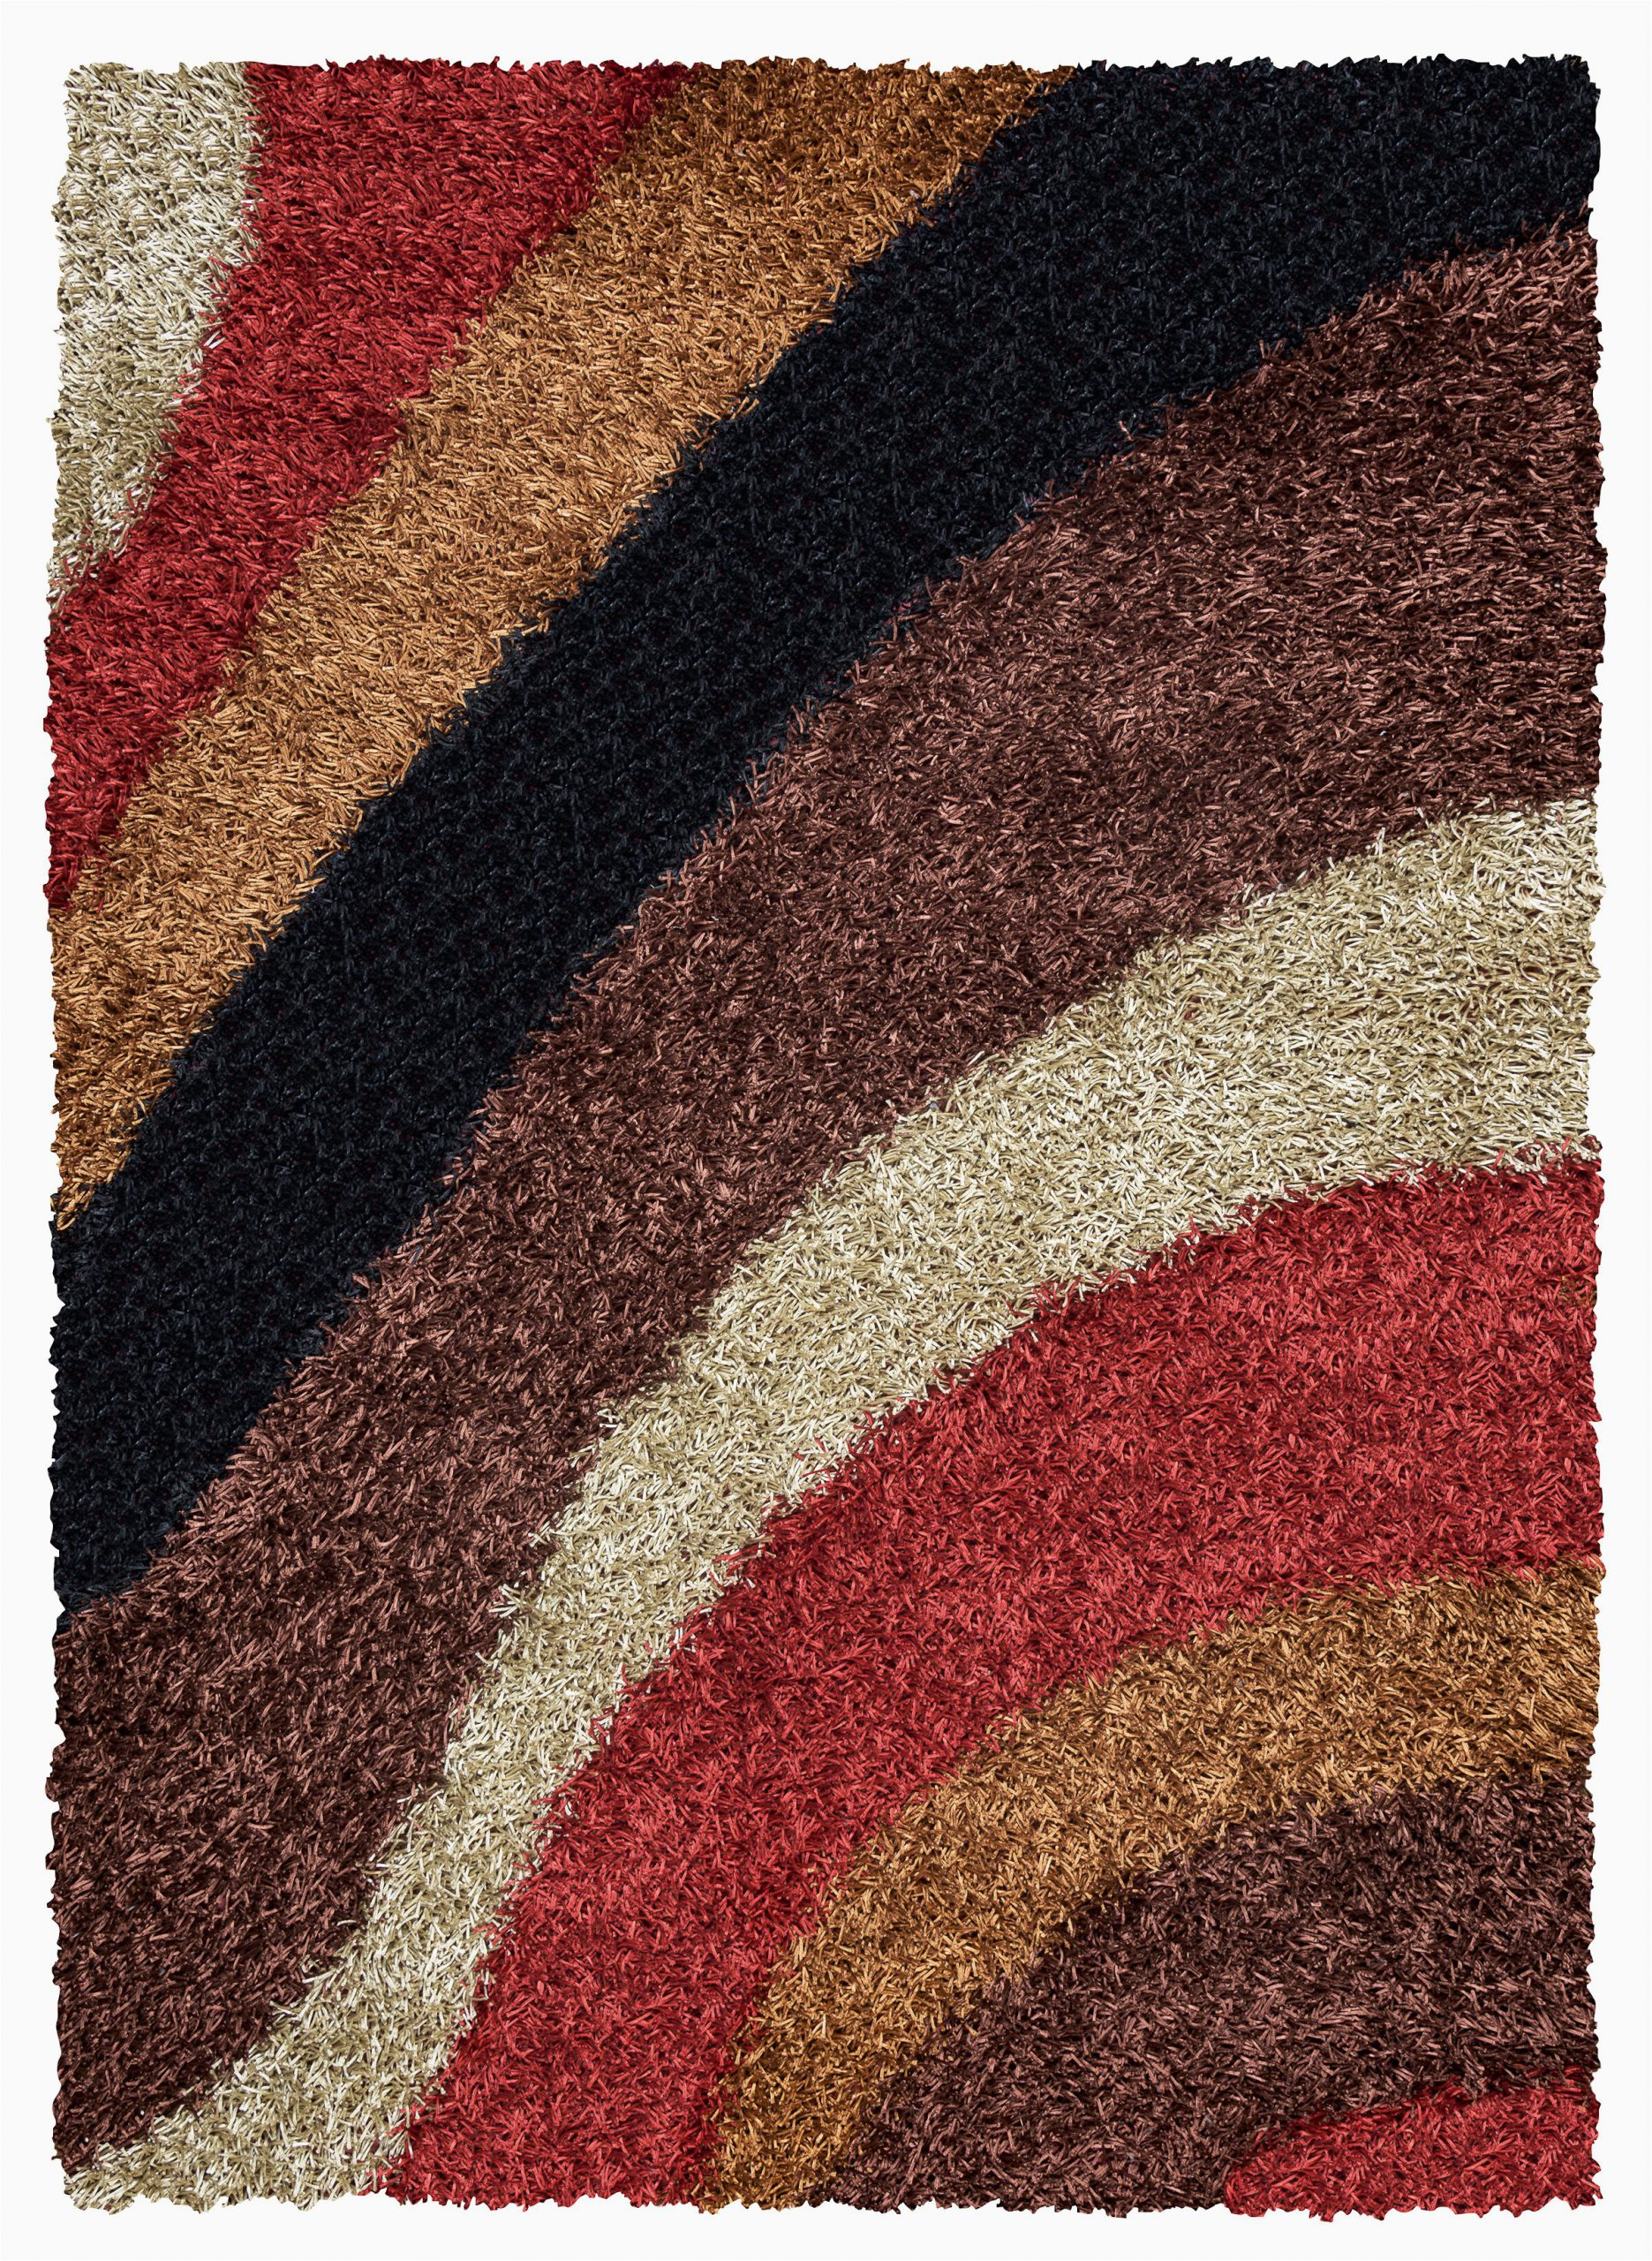 Red Brown and Tan area Rugs Hand Tufted Brown Red Tan area Rug